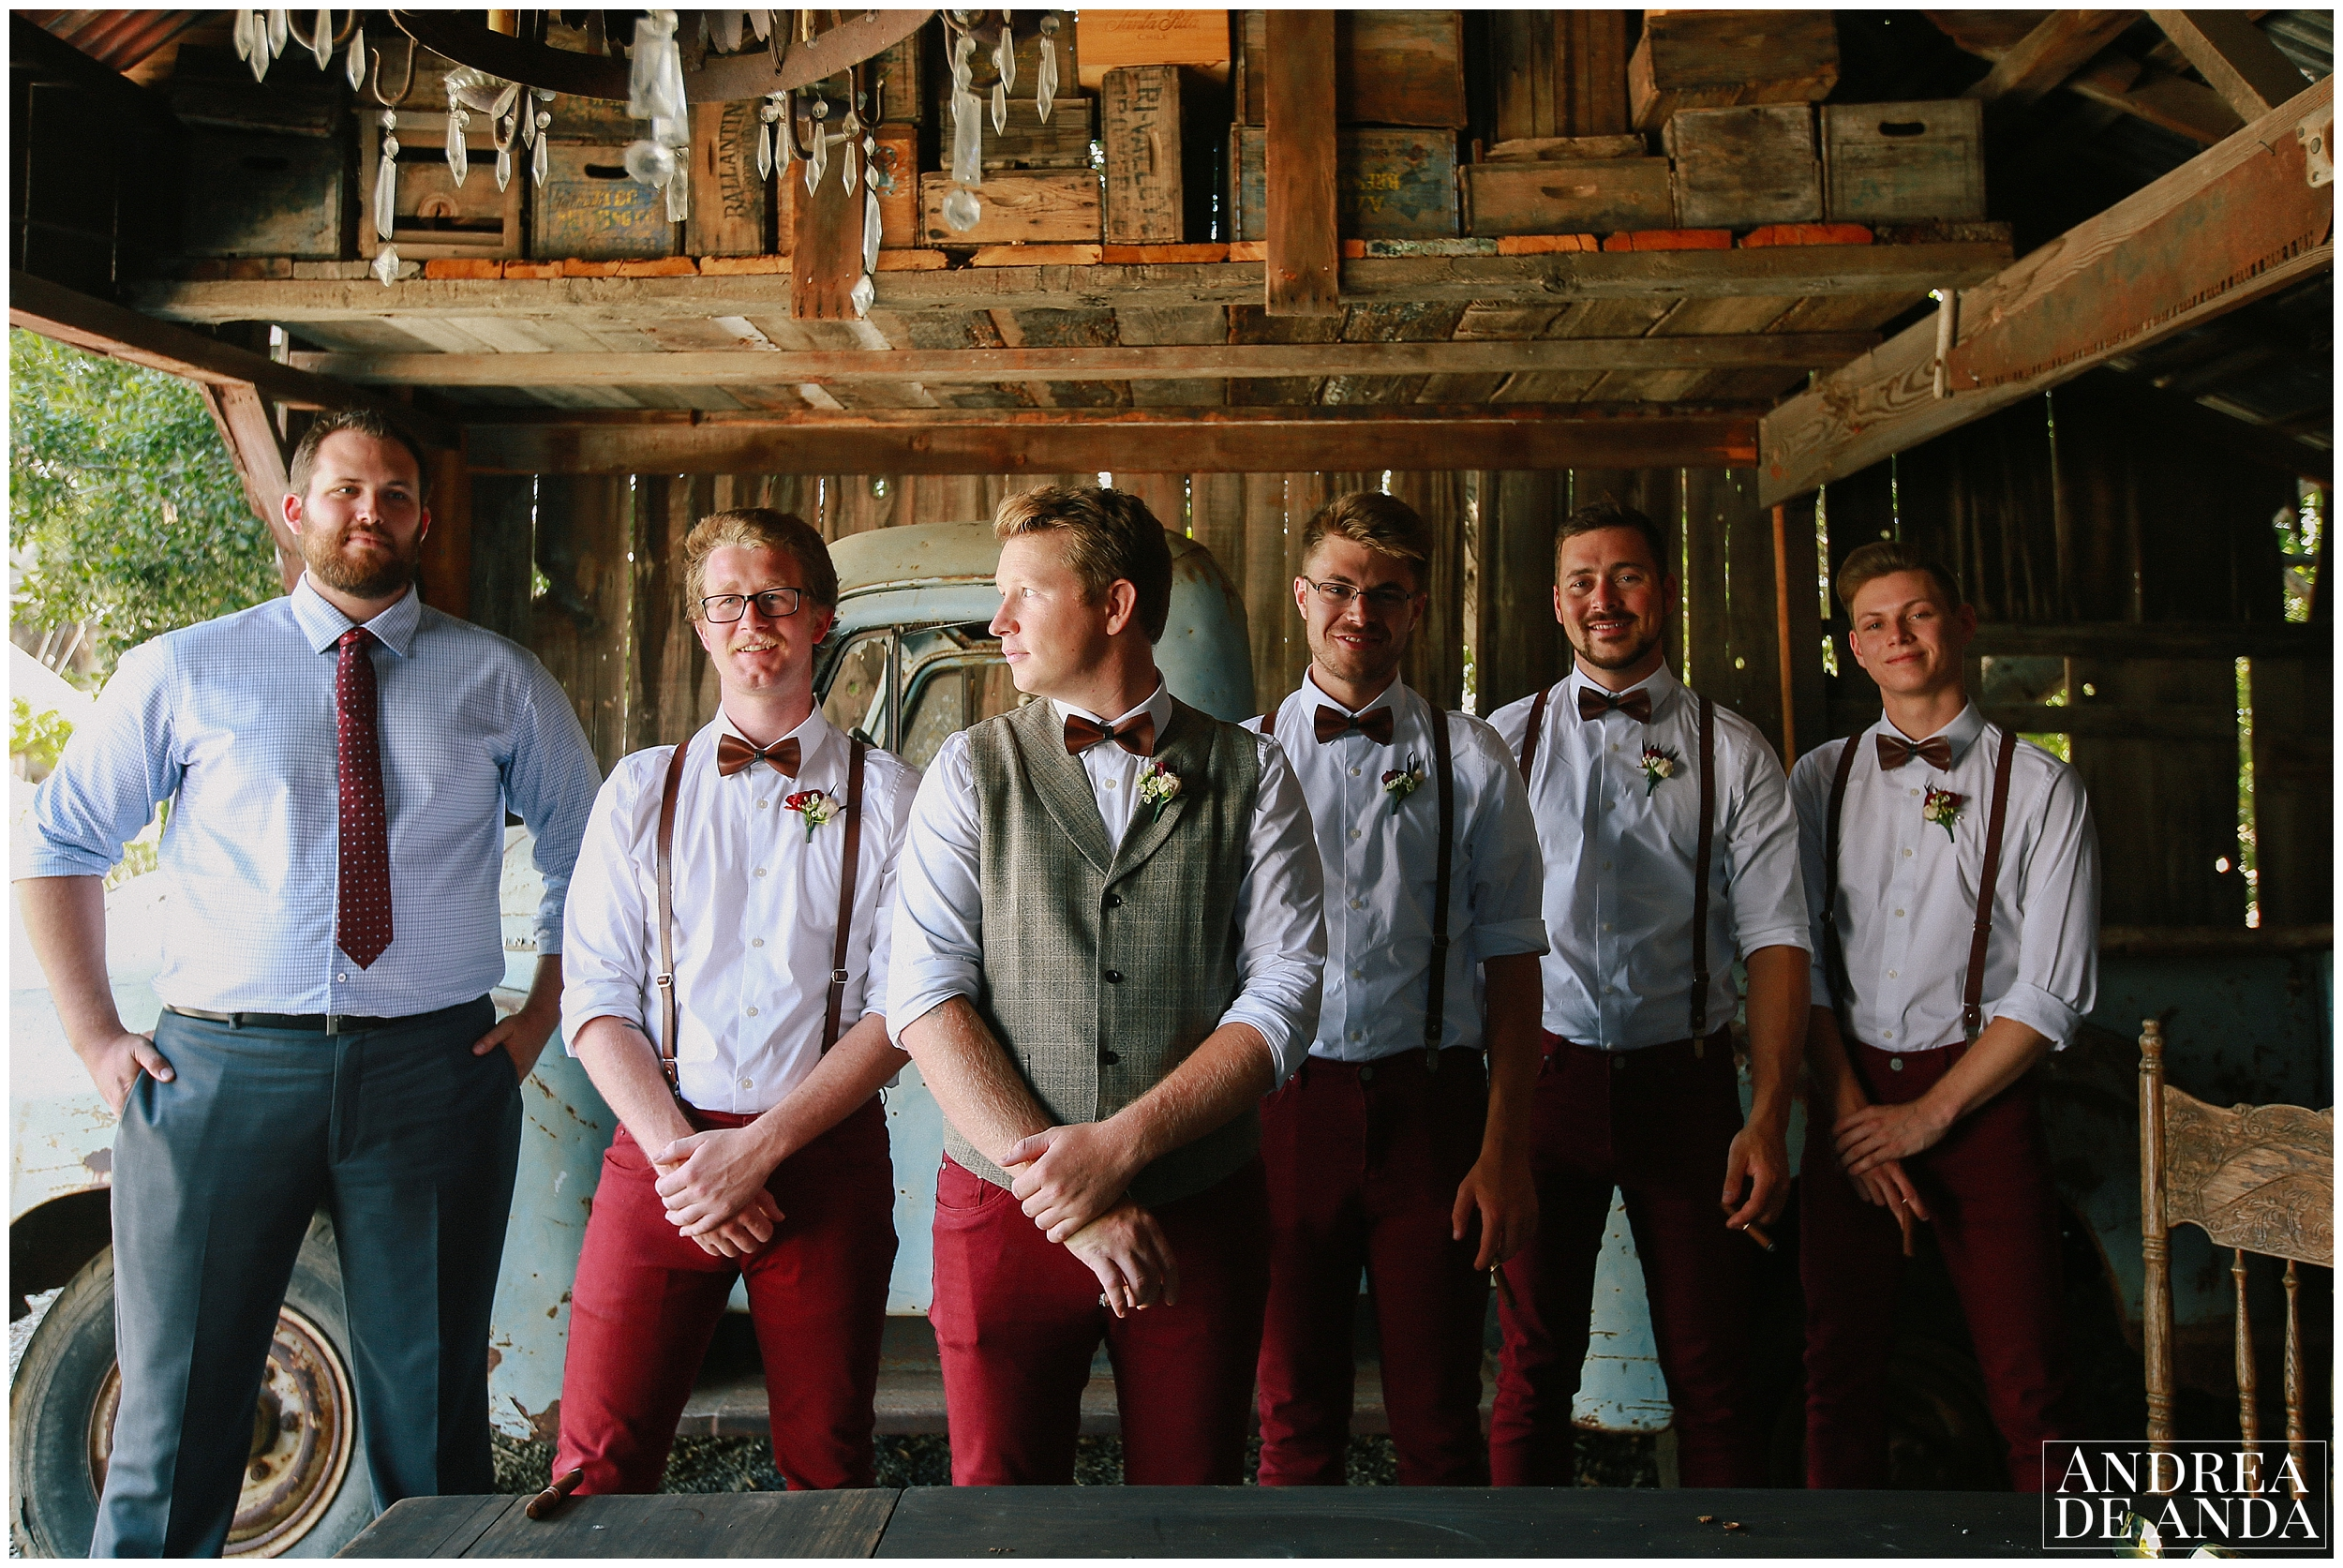 Groom & Groomsmen photo session at Dana Powers House and Barn